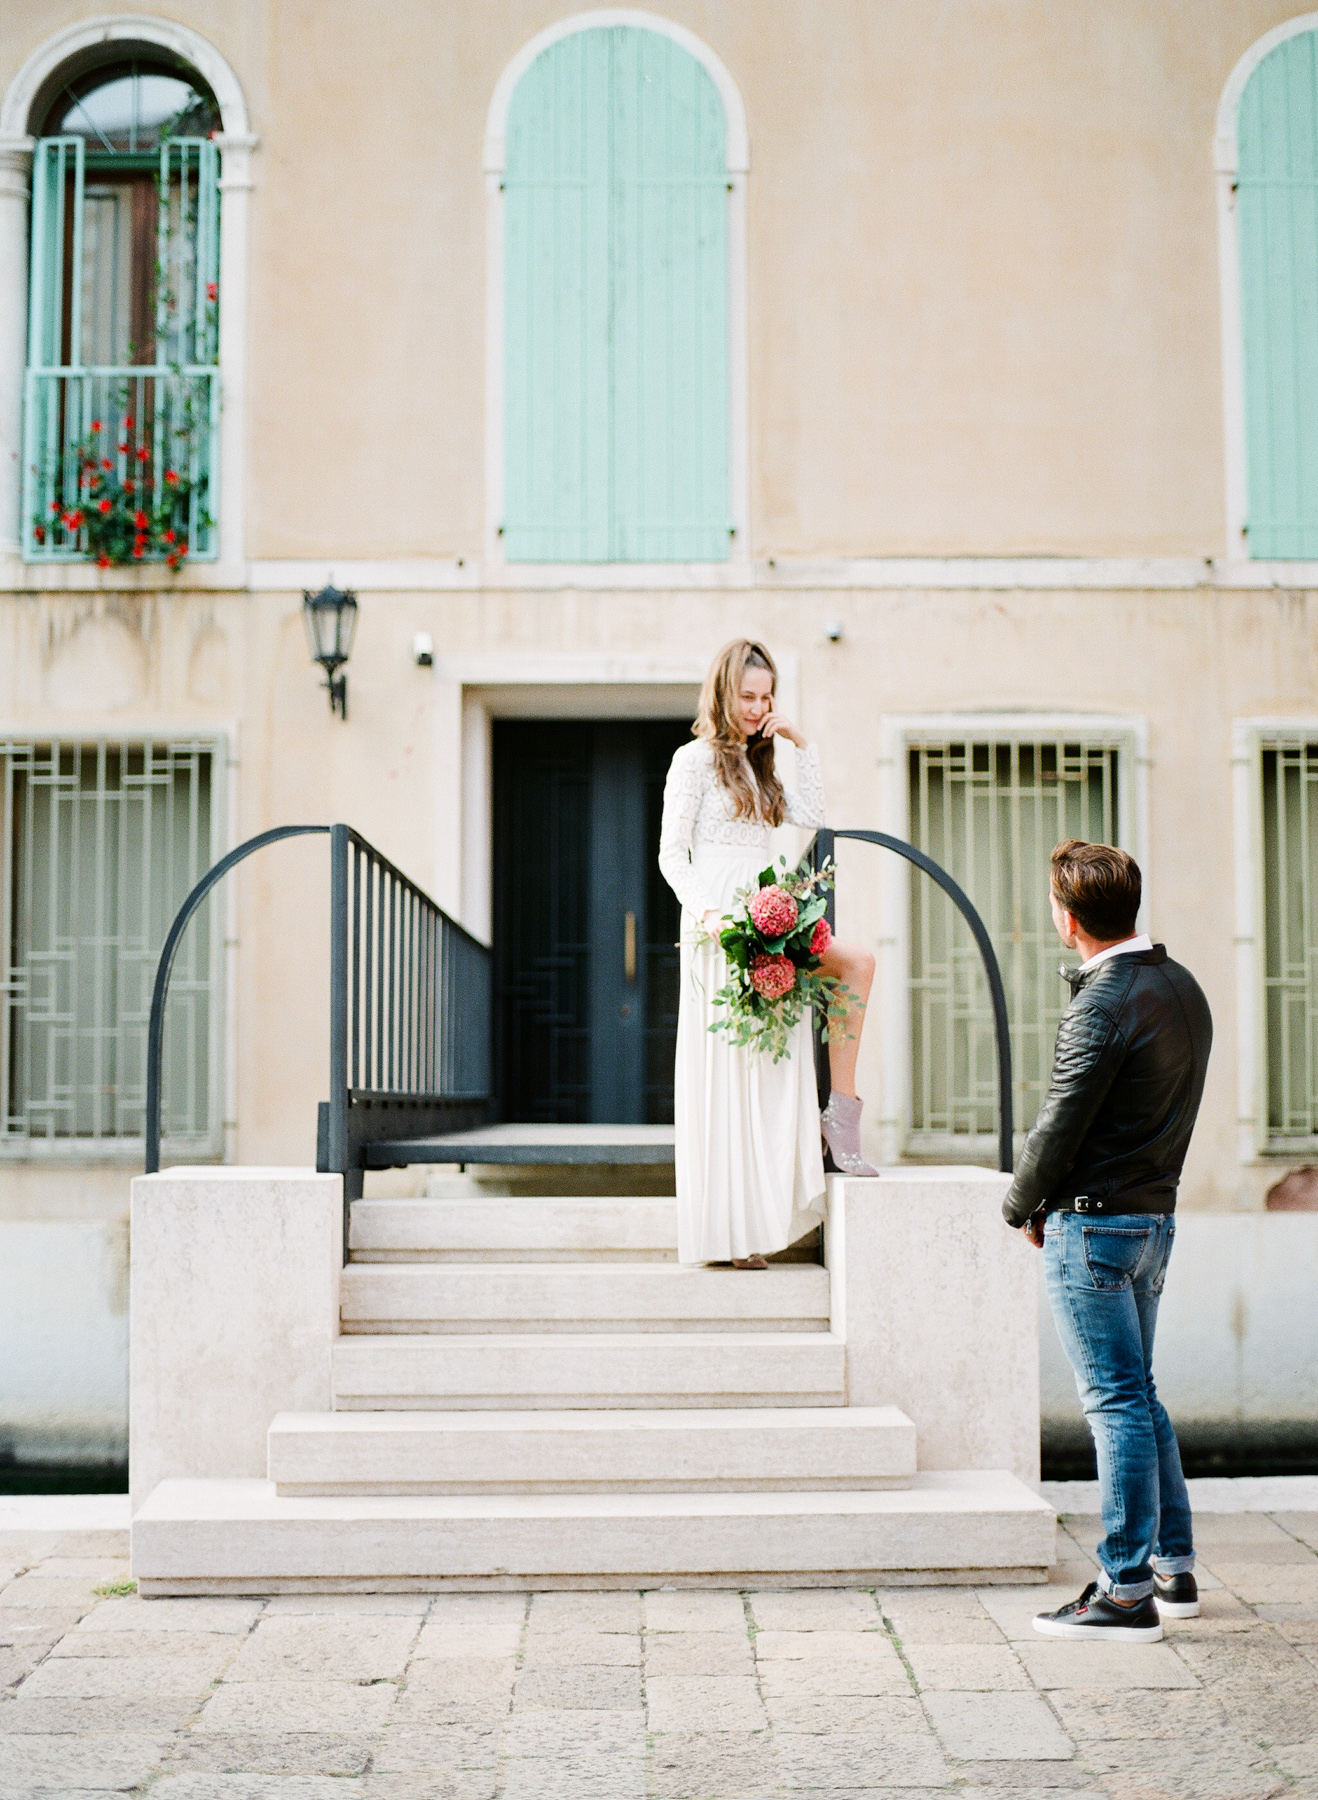 26 Venice Italy Photographer Wedding.jpg